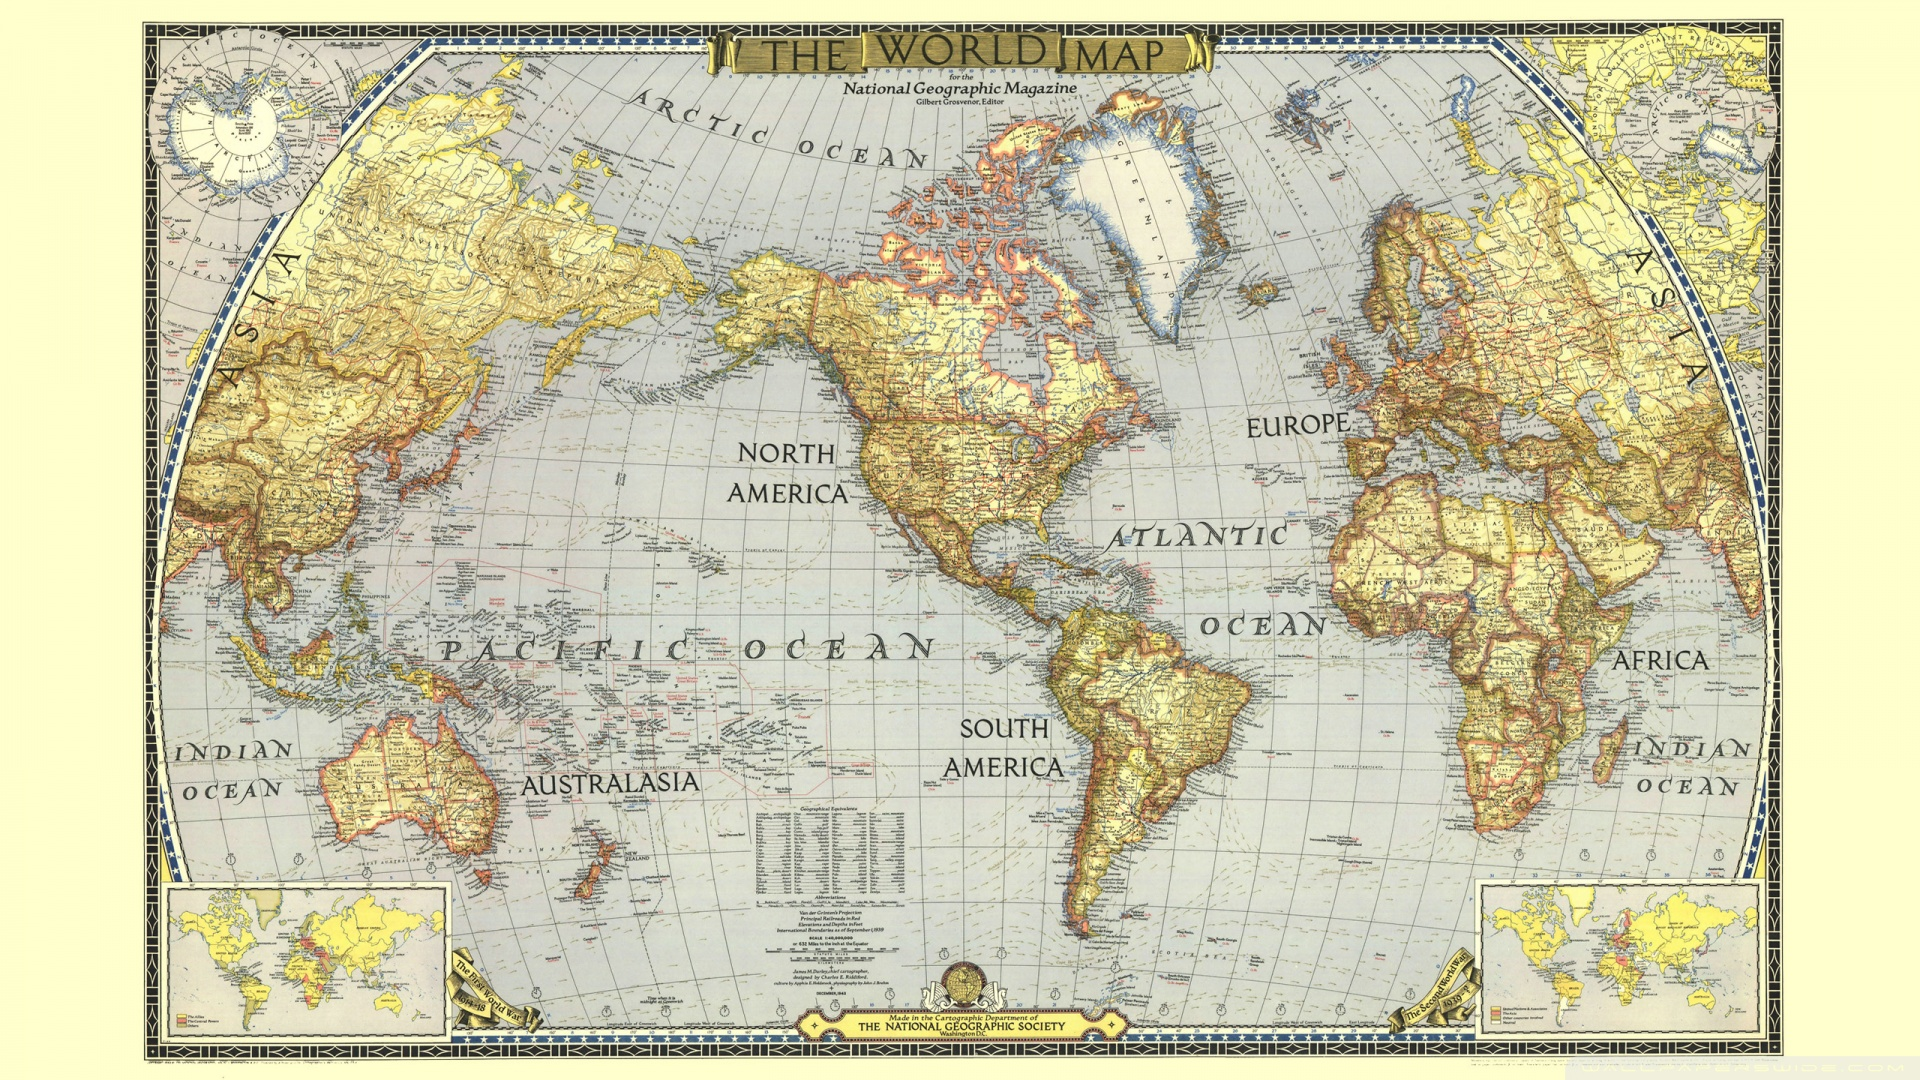 World Map Wallpaper 49+ images on Genchi.info